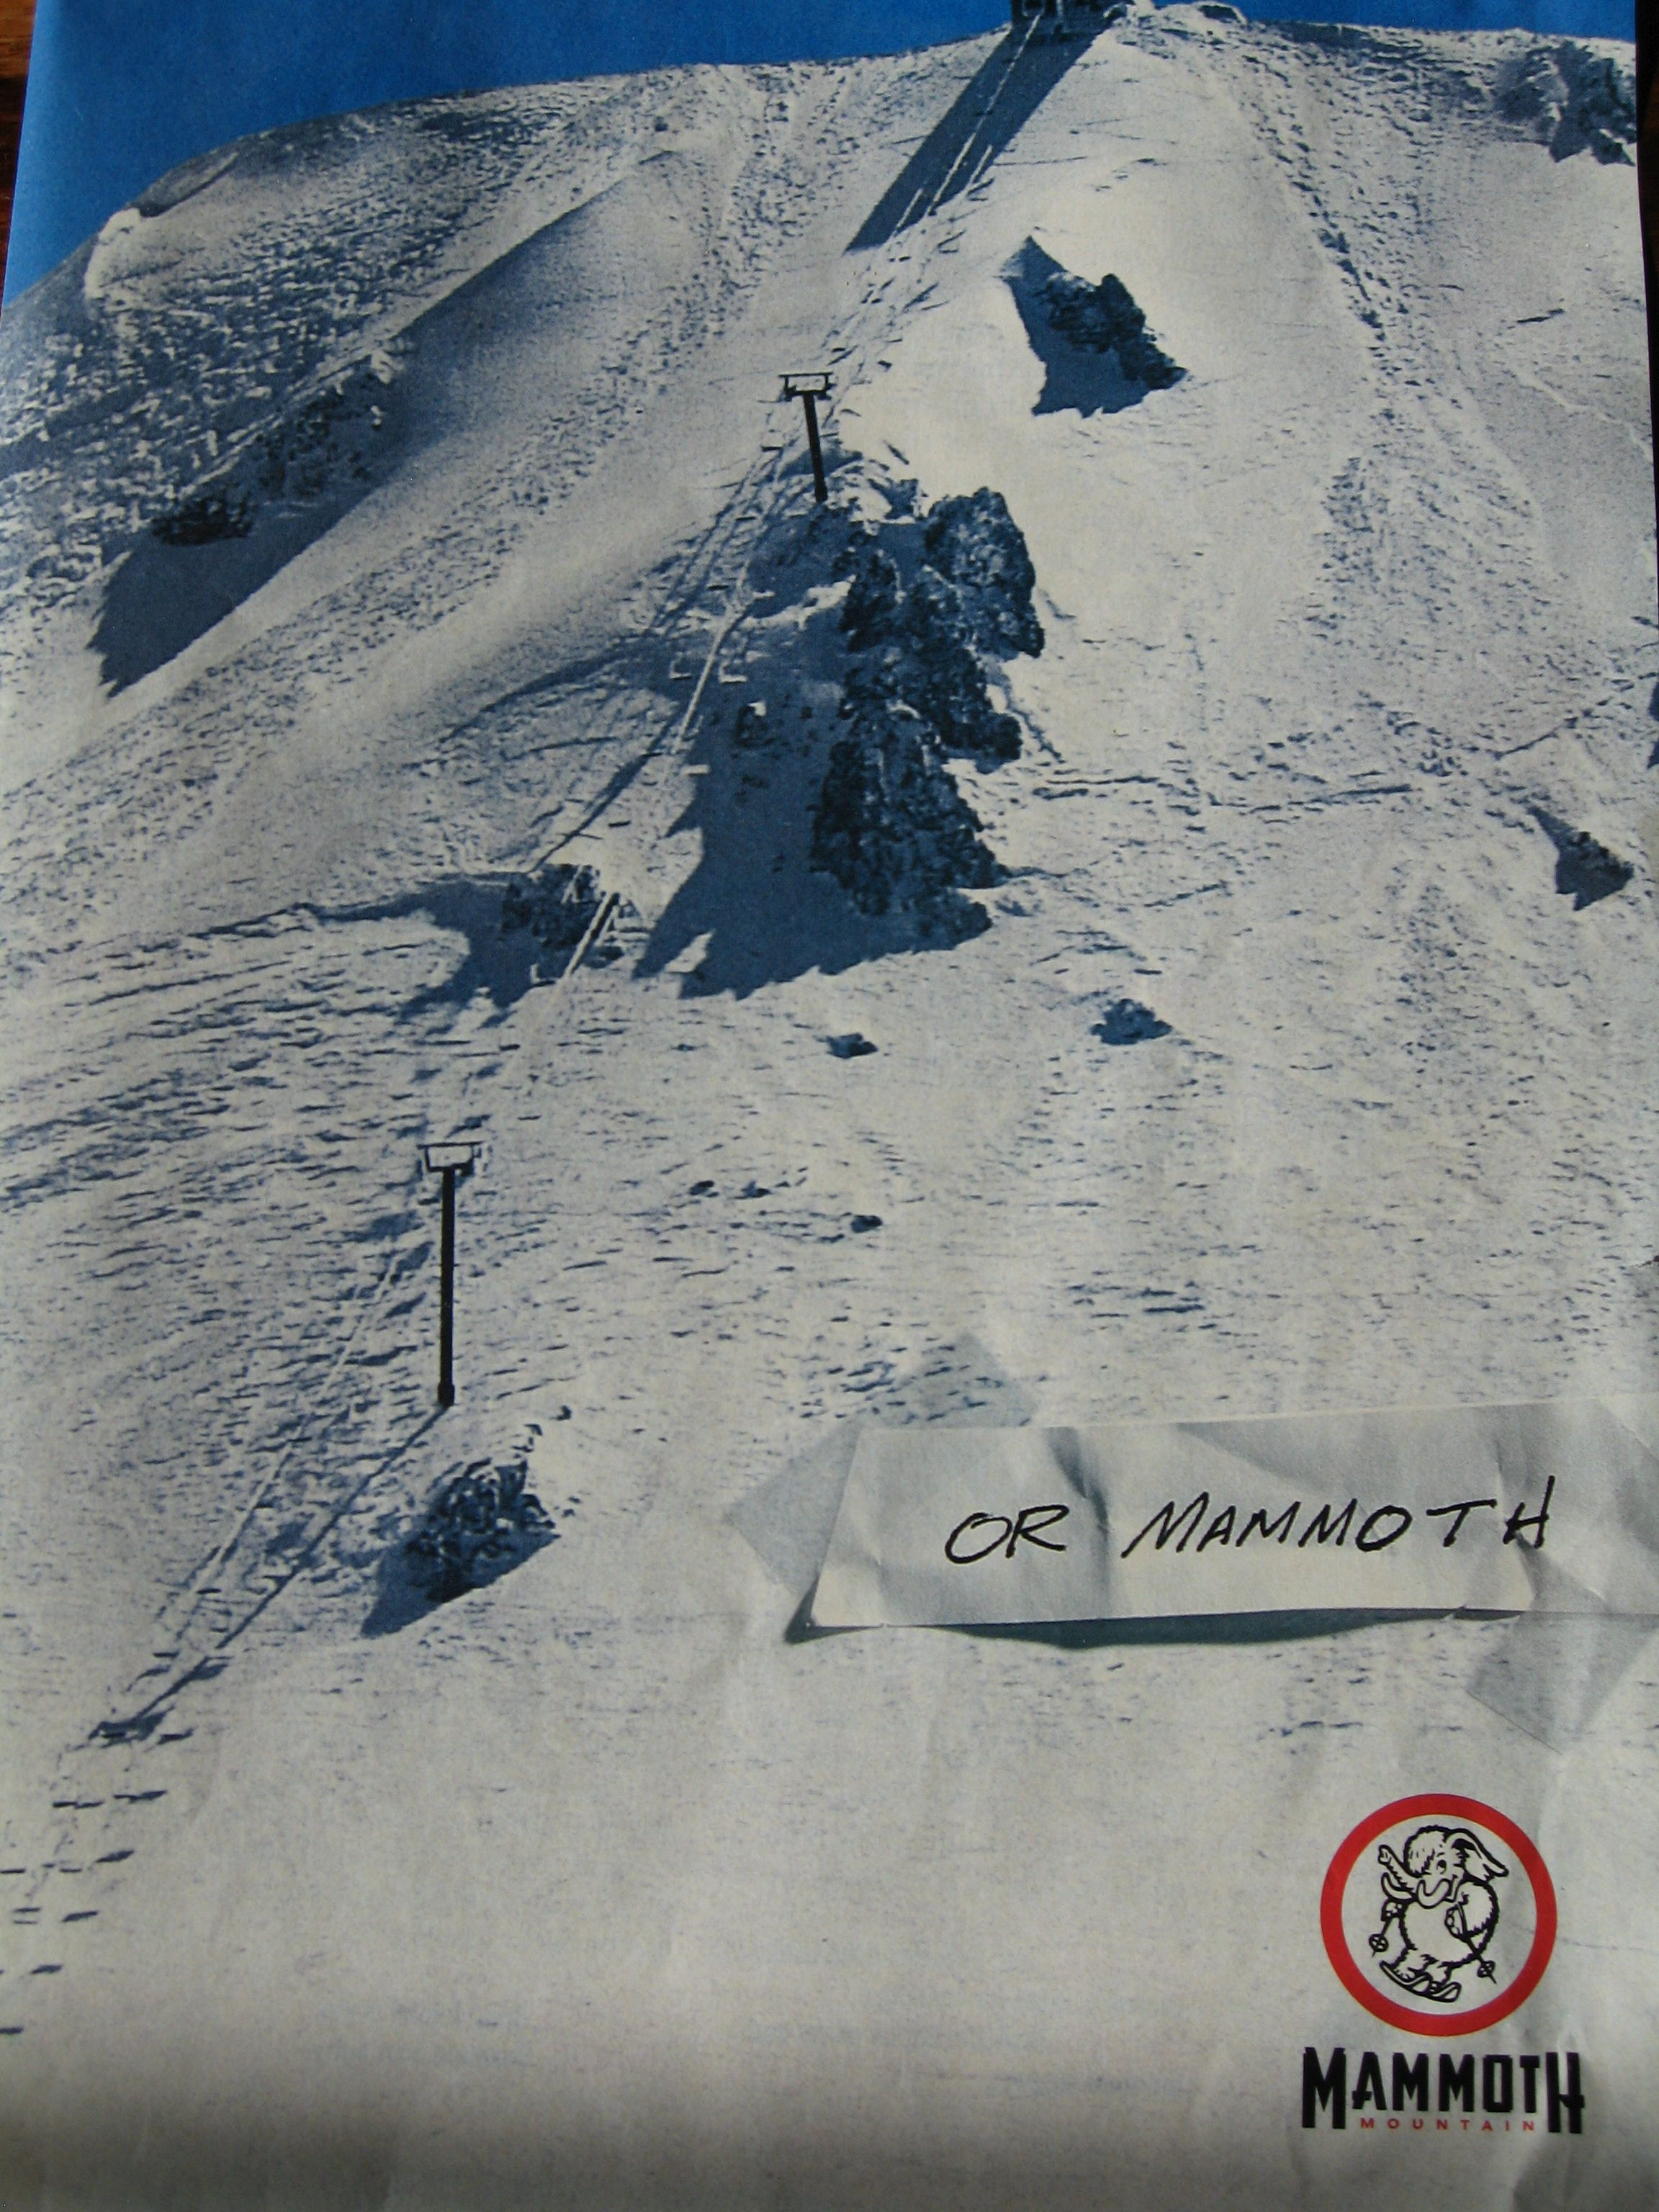 Rusty 39 s bulletin board chairway to heaven mammoth mtn for Chair 23 mammoth